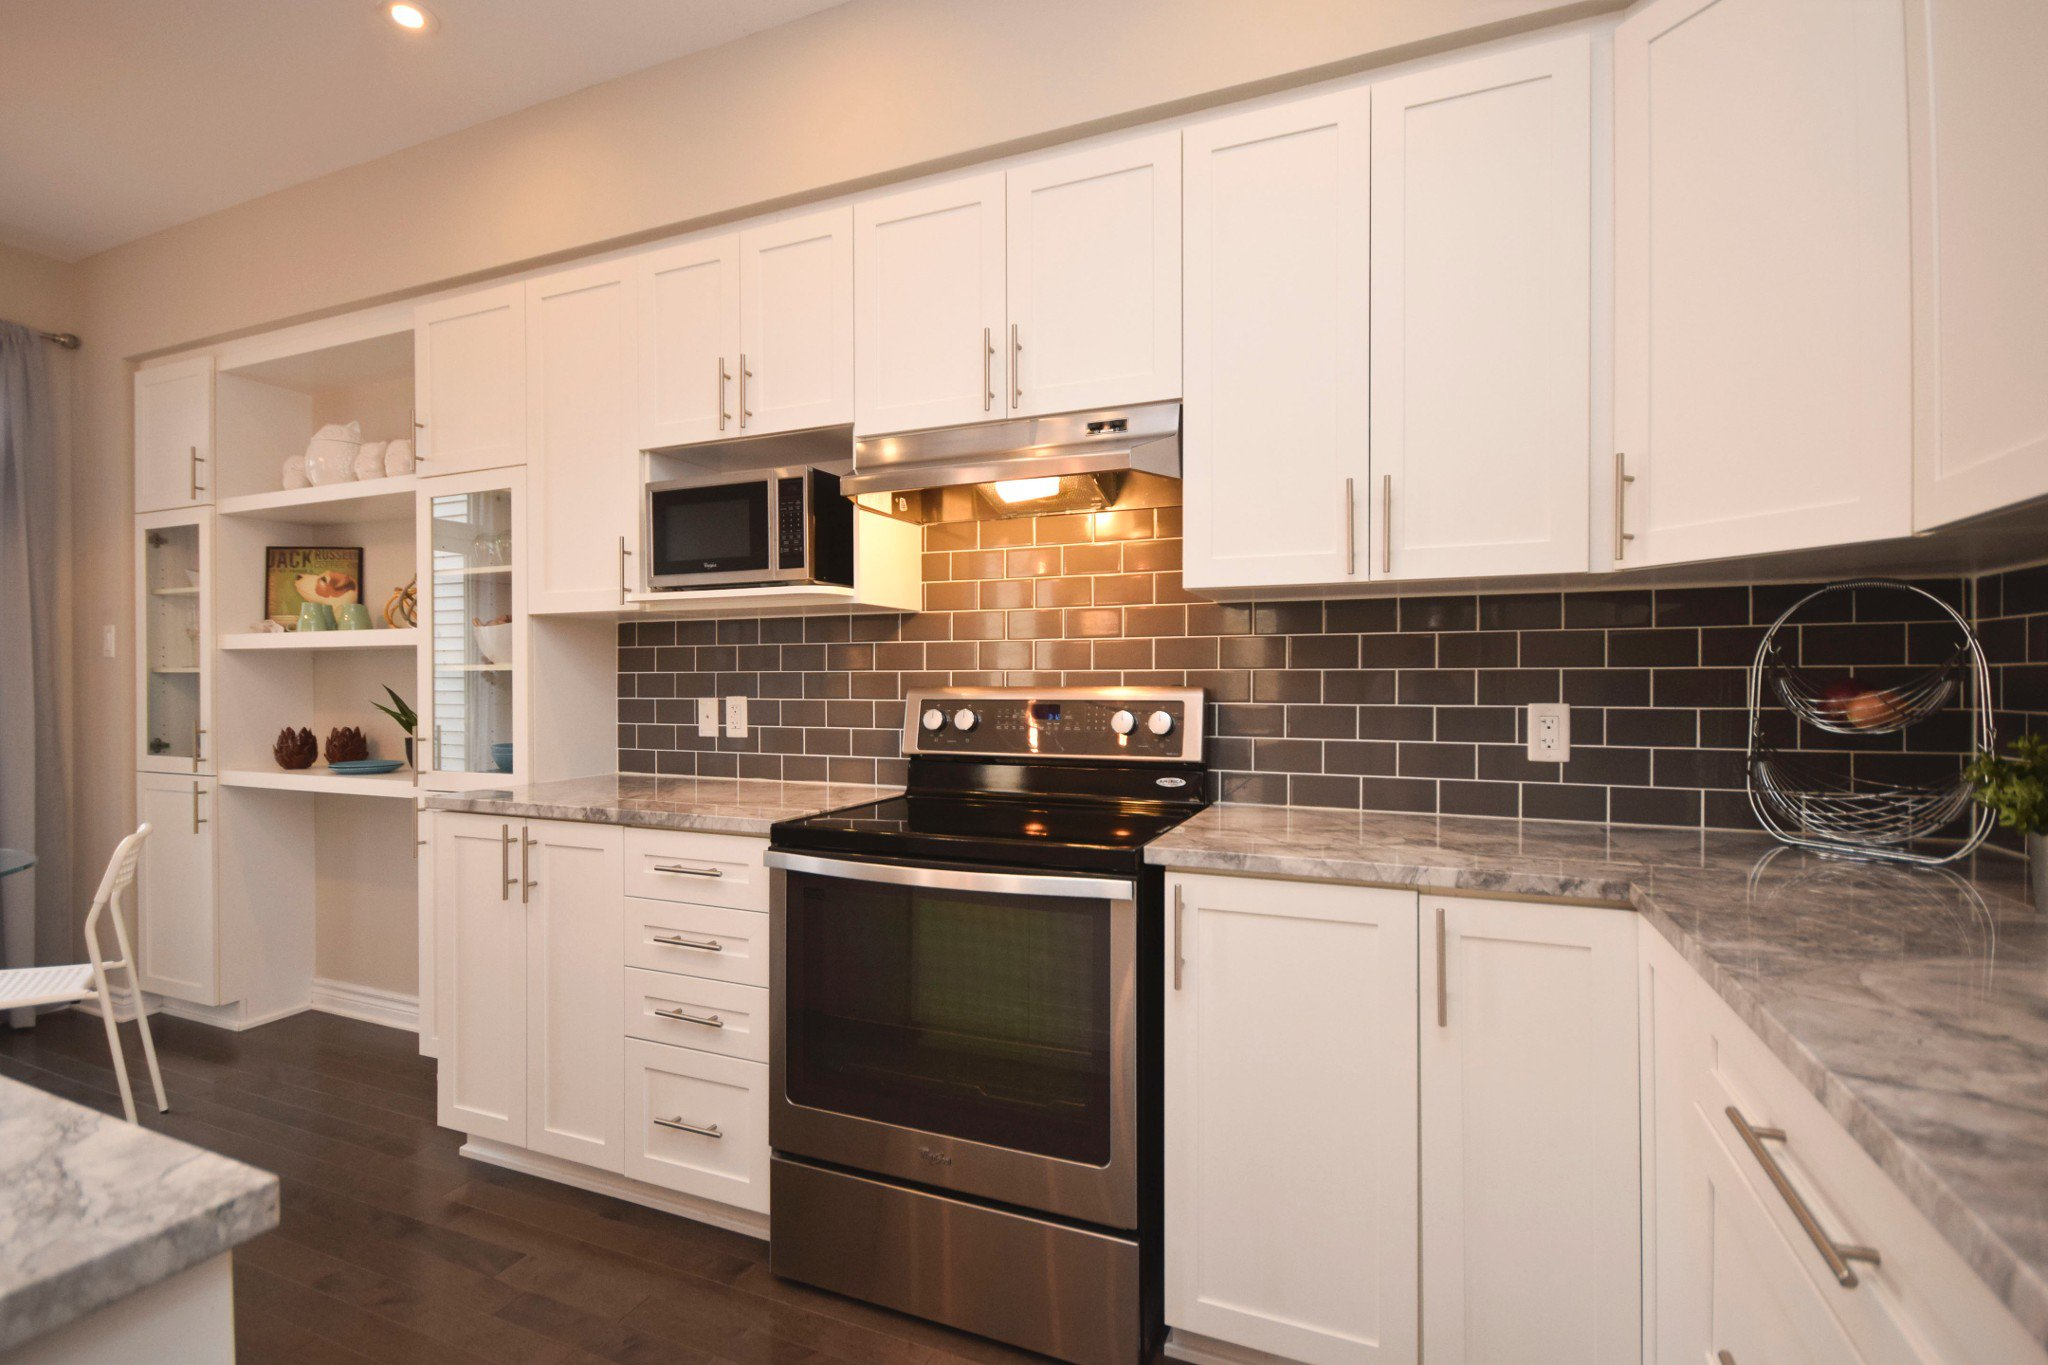 Photo 24: Photos: 131 Popplewell Crescent in Ottawa: Cedargrove / Fraserdale House for sale (Barrhaven)  : MLS®# 1130335